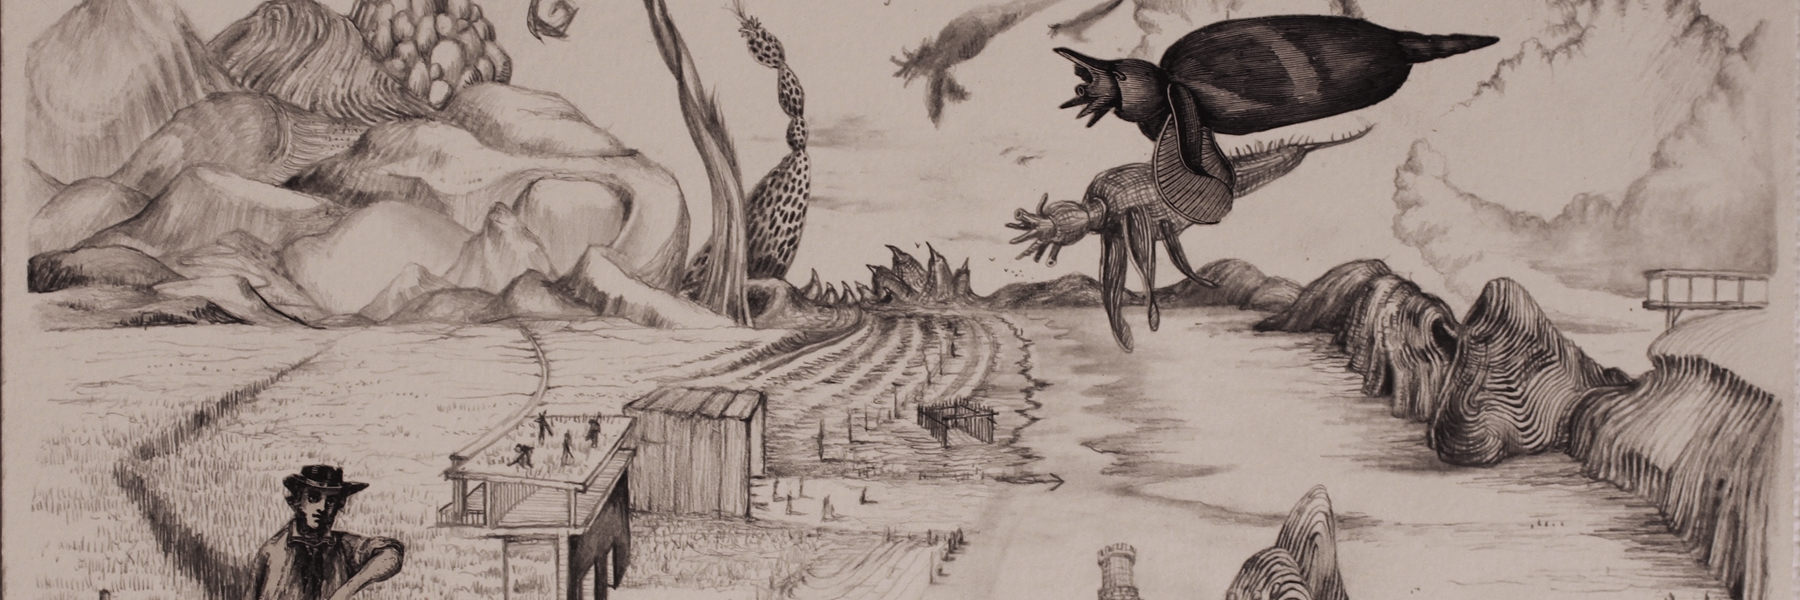 Black and white drawing of a surreal landscape